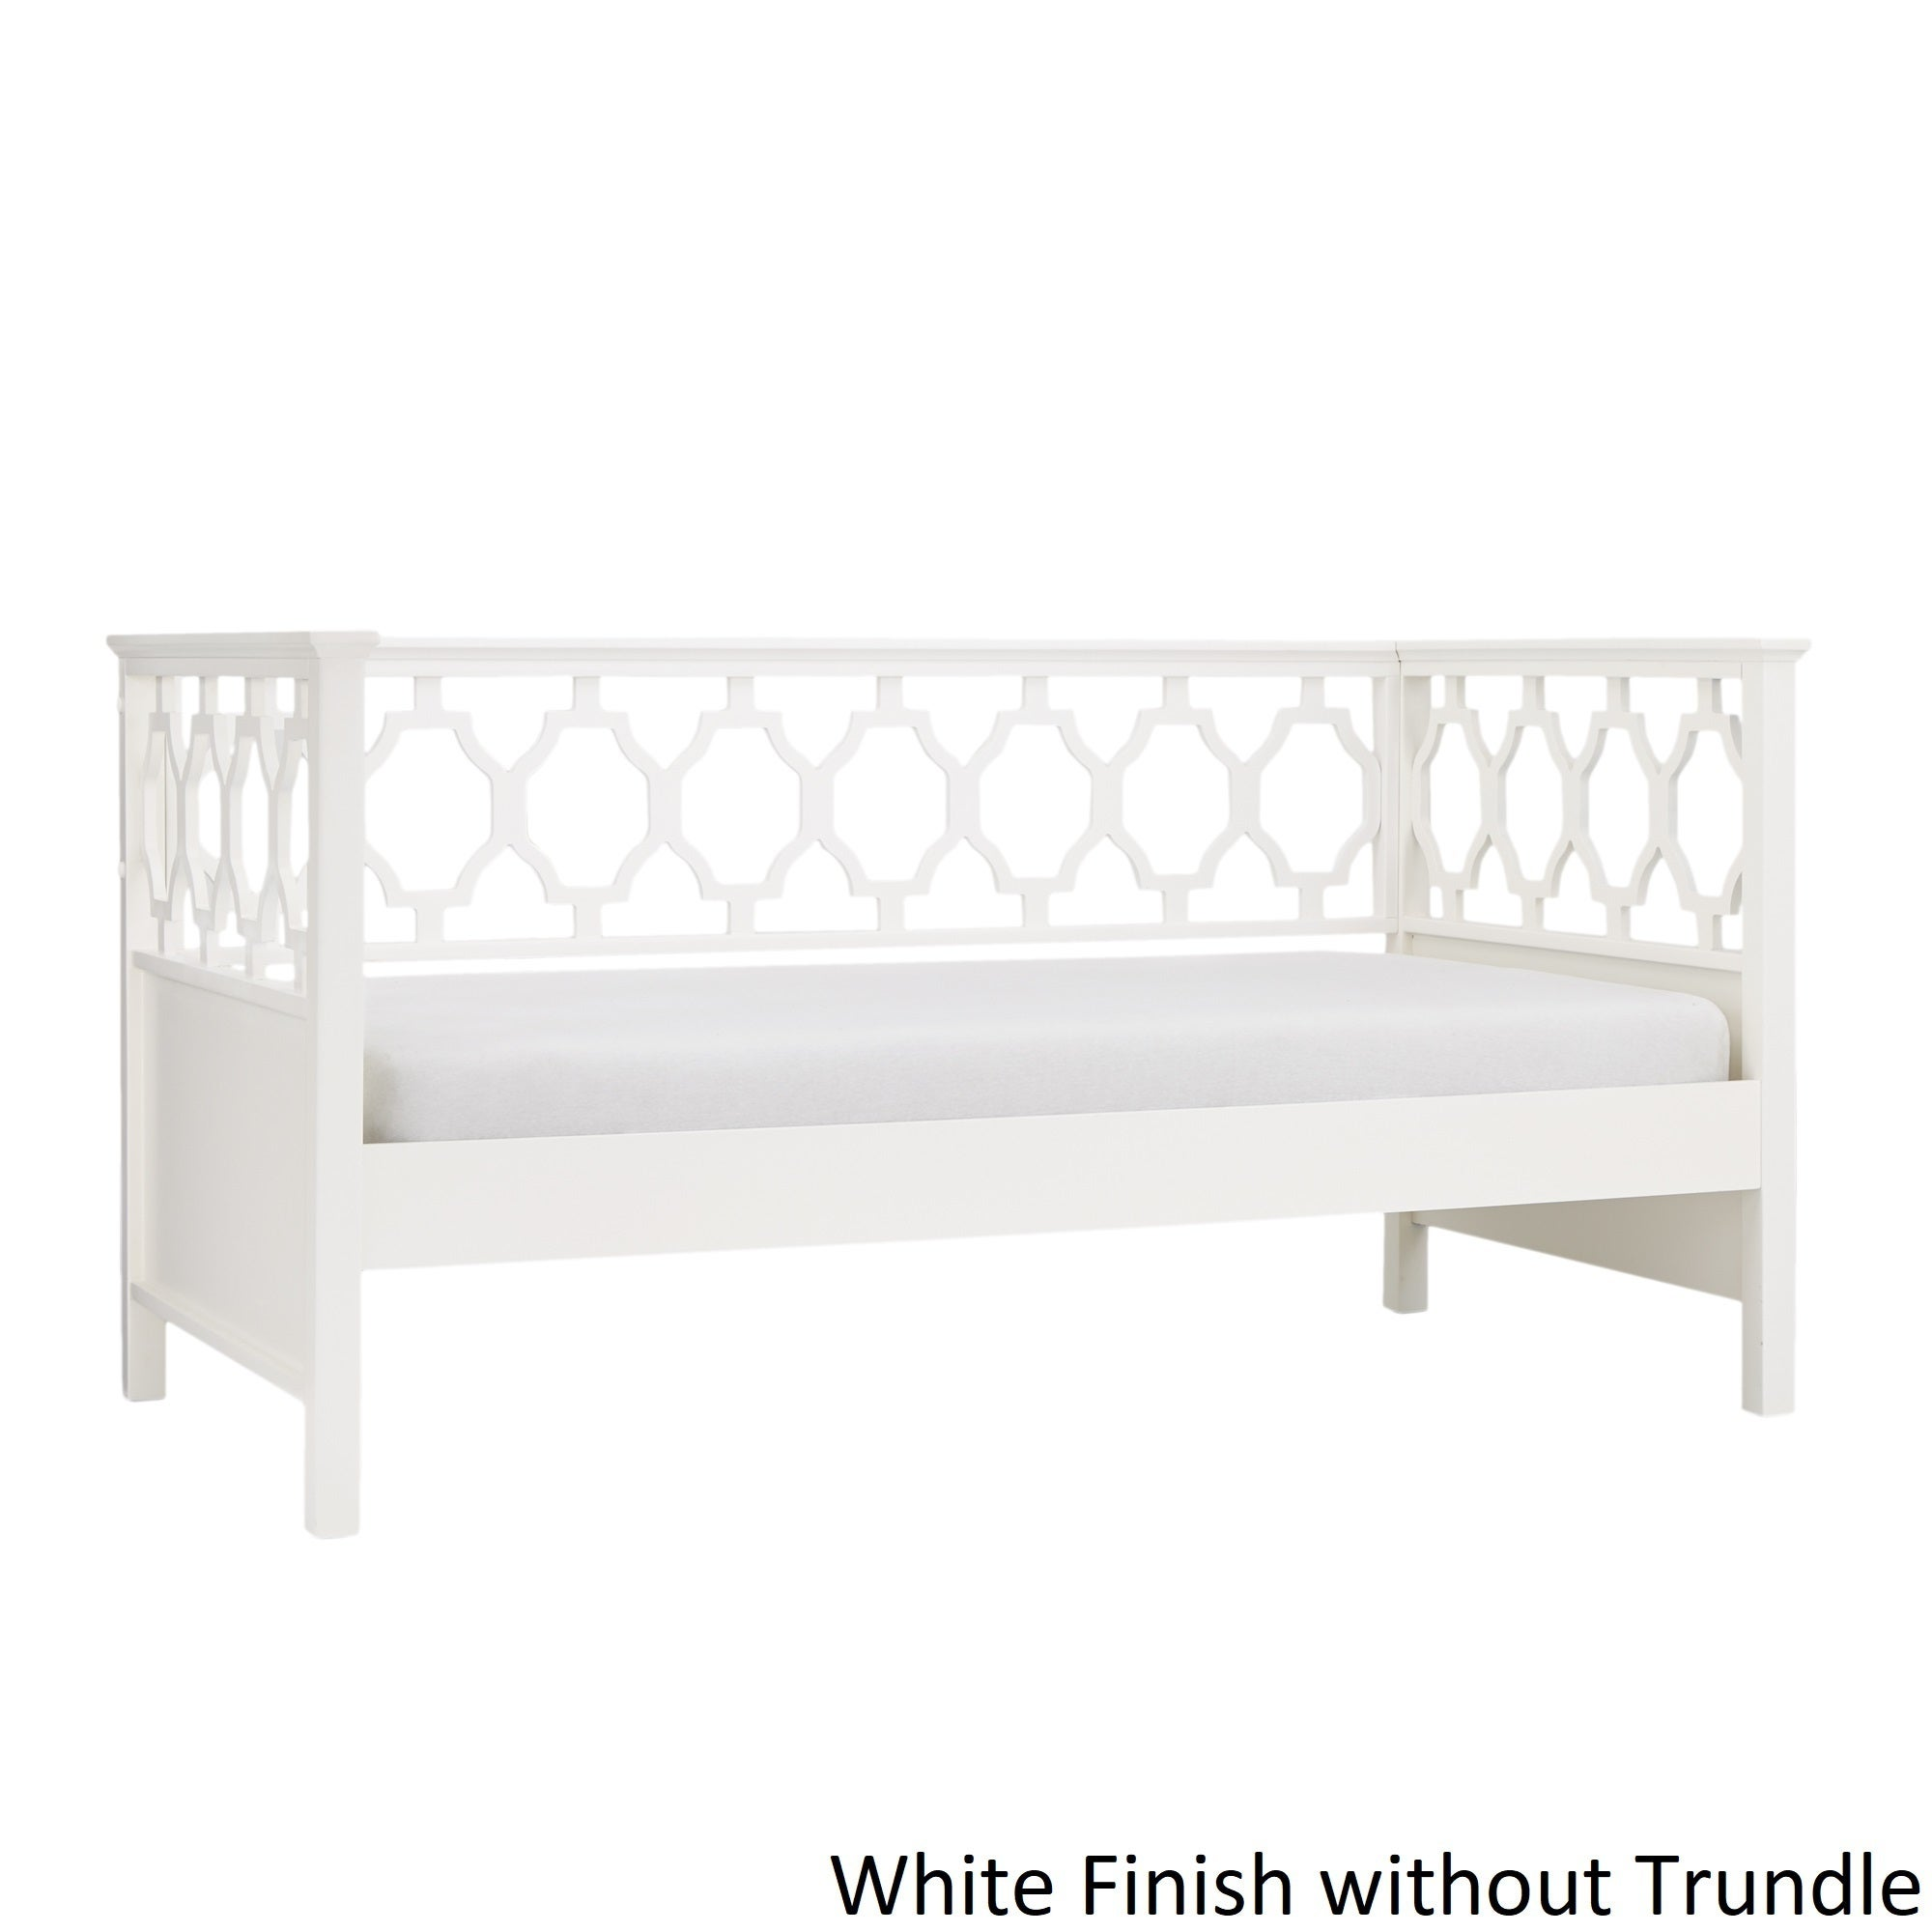 Marci Quatrefoil Wood Daybed by iNSPIRE Q Bold - Free Shipping Today -  Overstock.com - 25547719